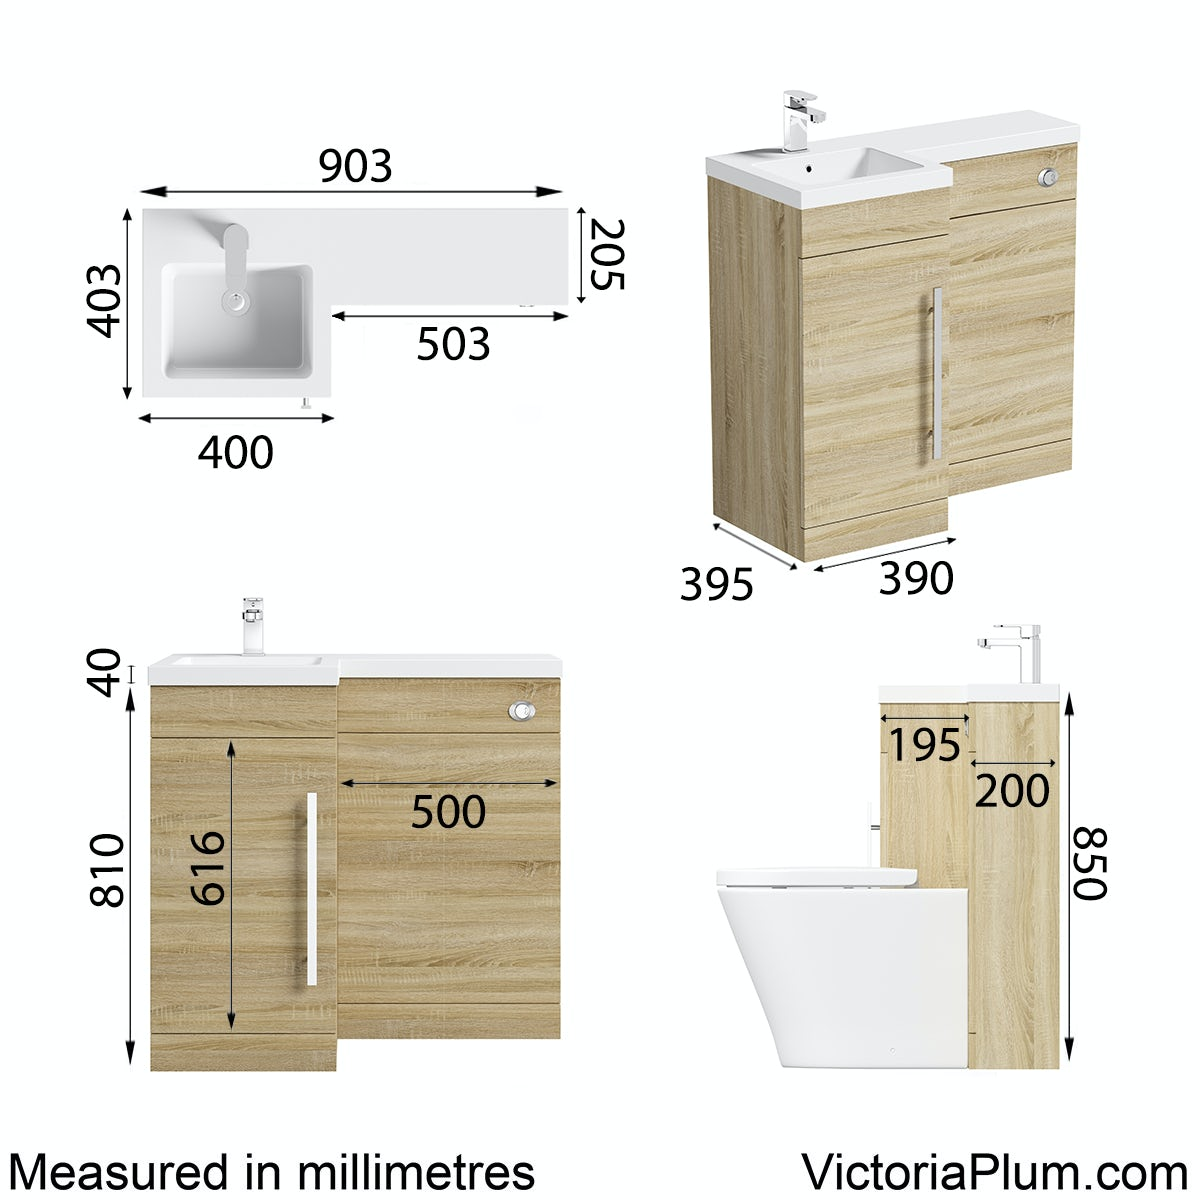 Dimensions for Orchard MySpace oak left handed unit including concealed cistern